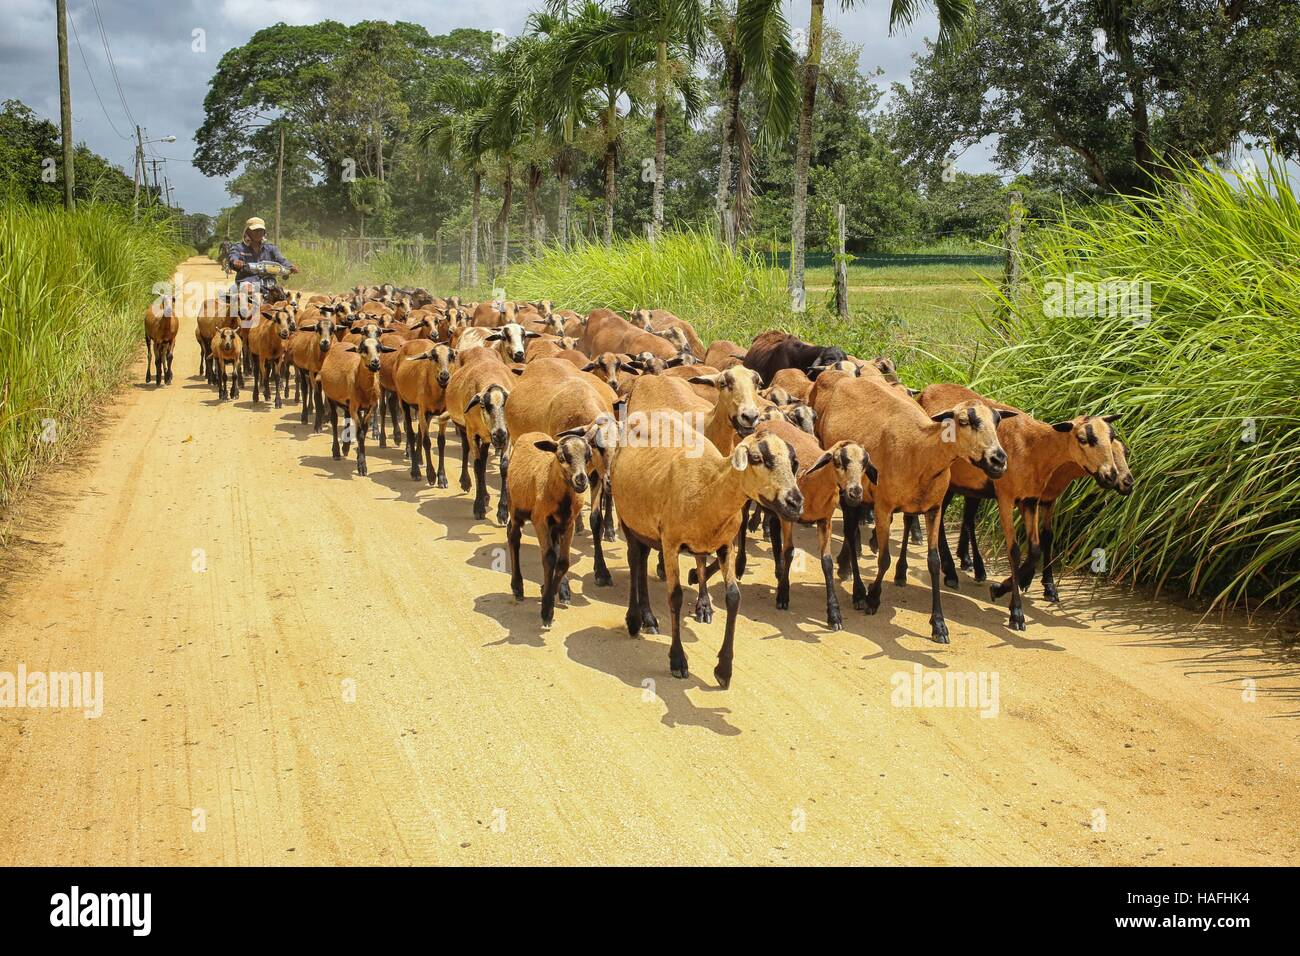 Motorized goatherd on a road in Suriname - Stock Image